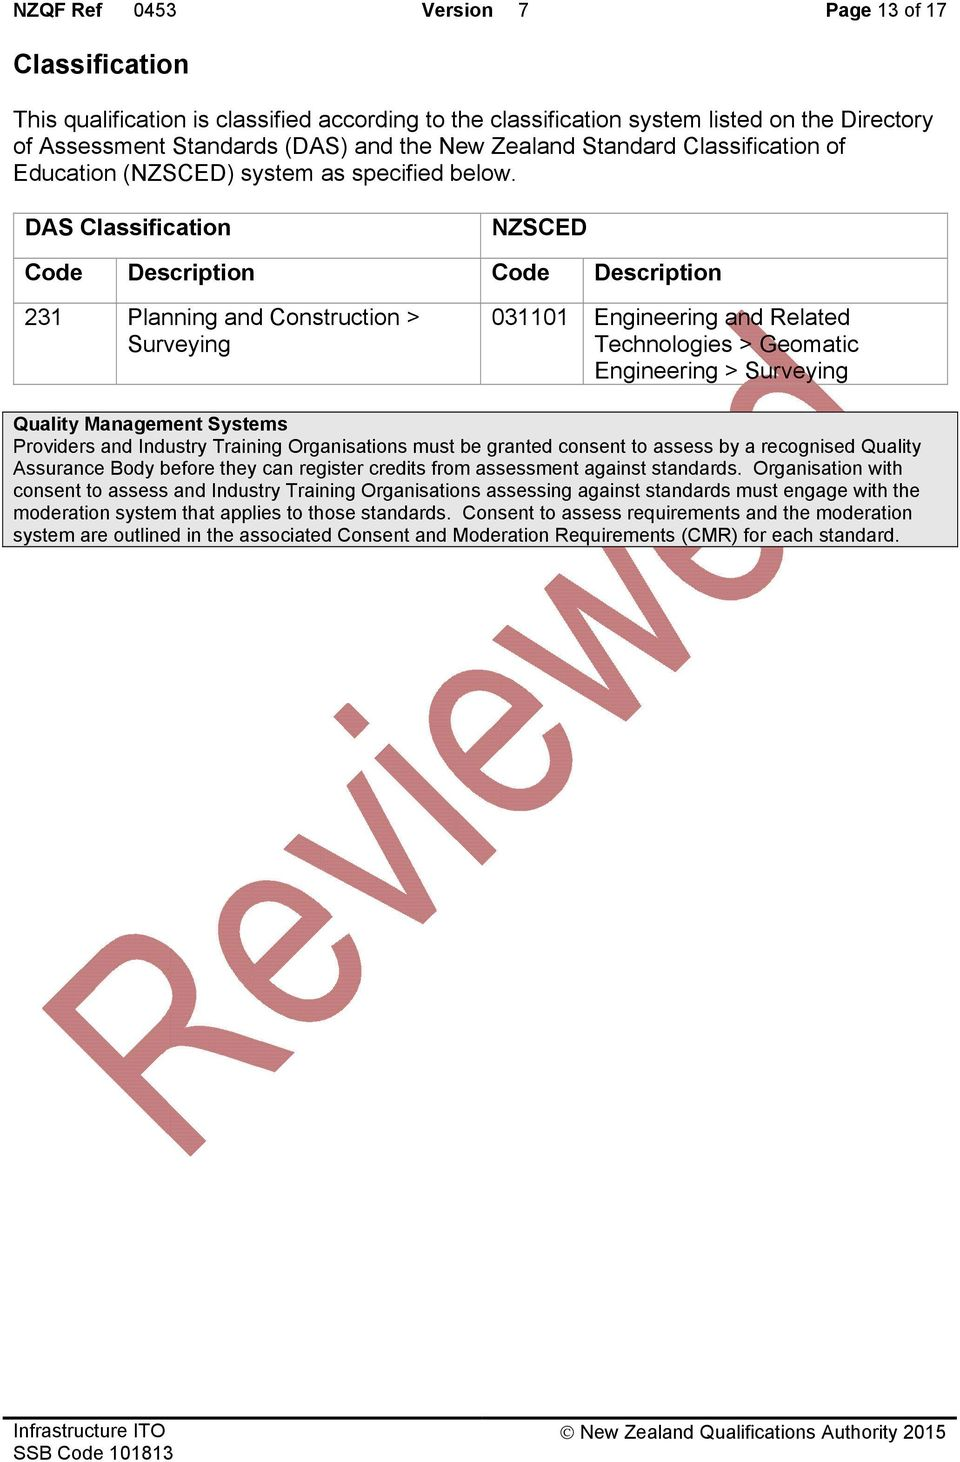 DAS Classification NZSCED Code Description Code Description 231 Planning and Construction > Surveying 031101 Engineering and Related Technologies > Geomatic Engineering > Surveying Quality Management